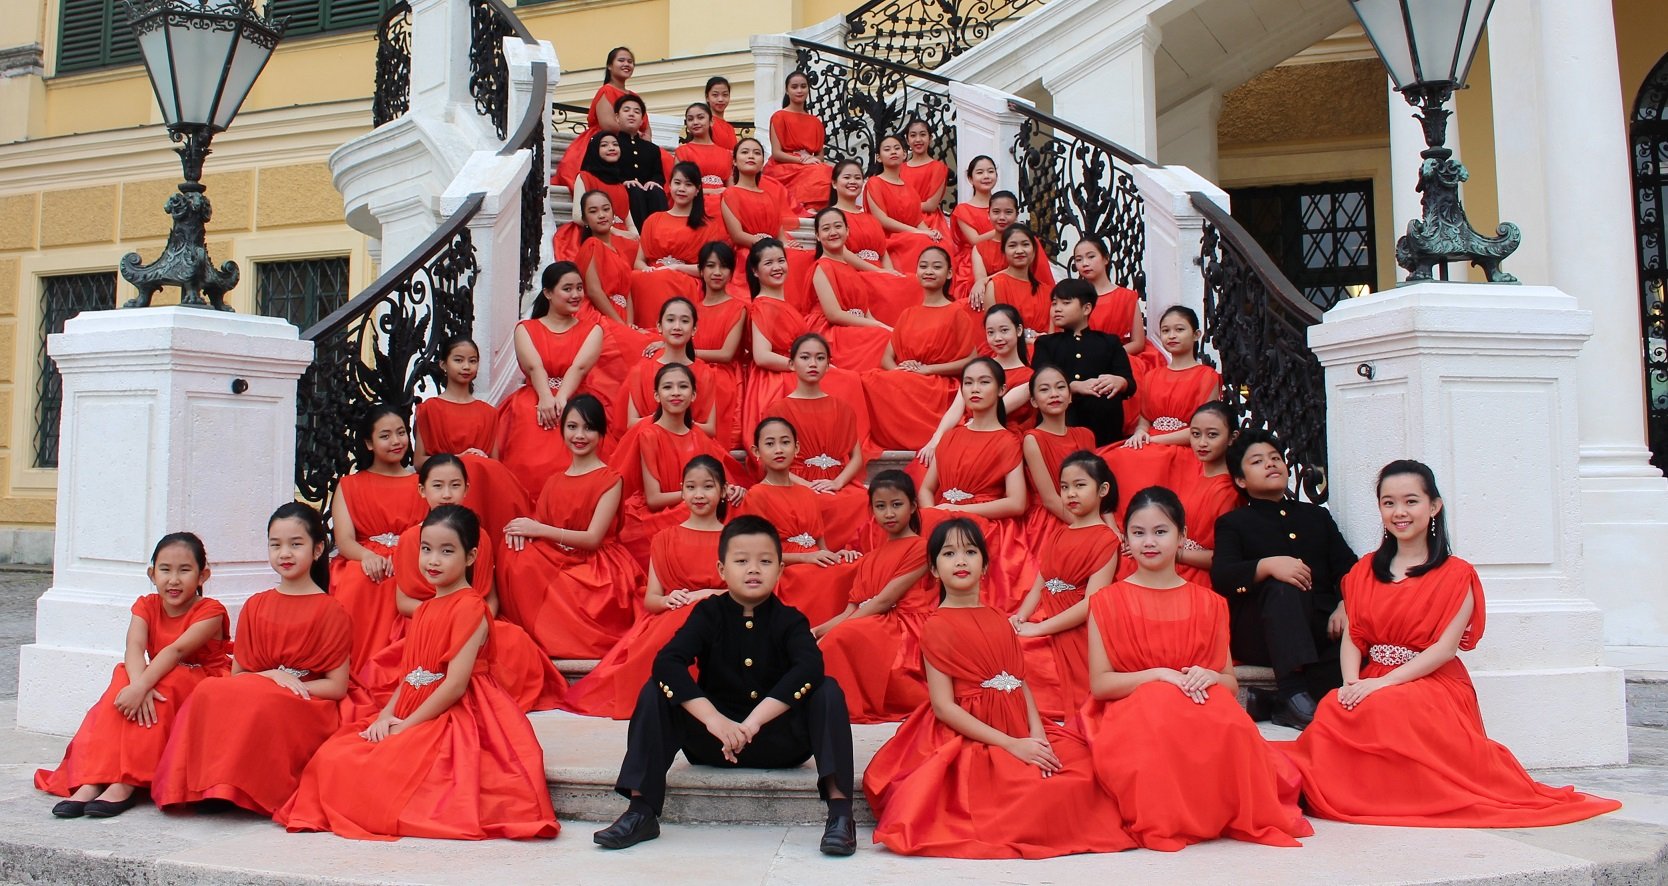 The Resonanz Children Choir's (TRCC) (Foto: http://www.venicechoralcompetition.it)